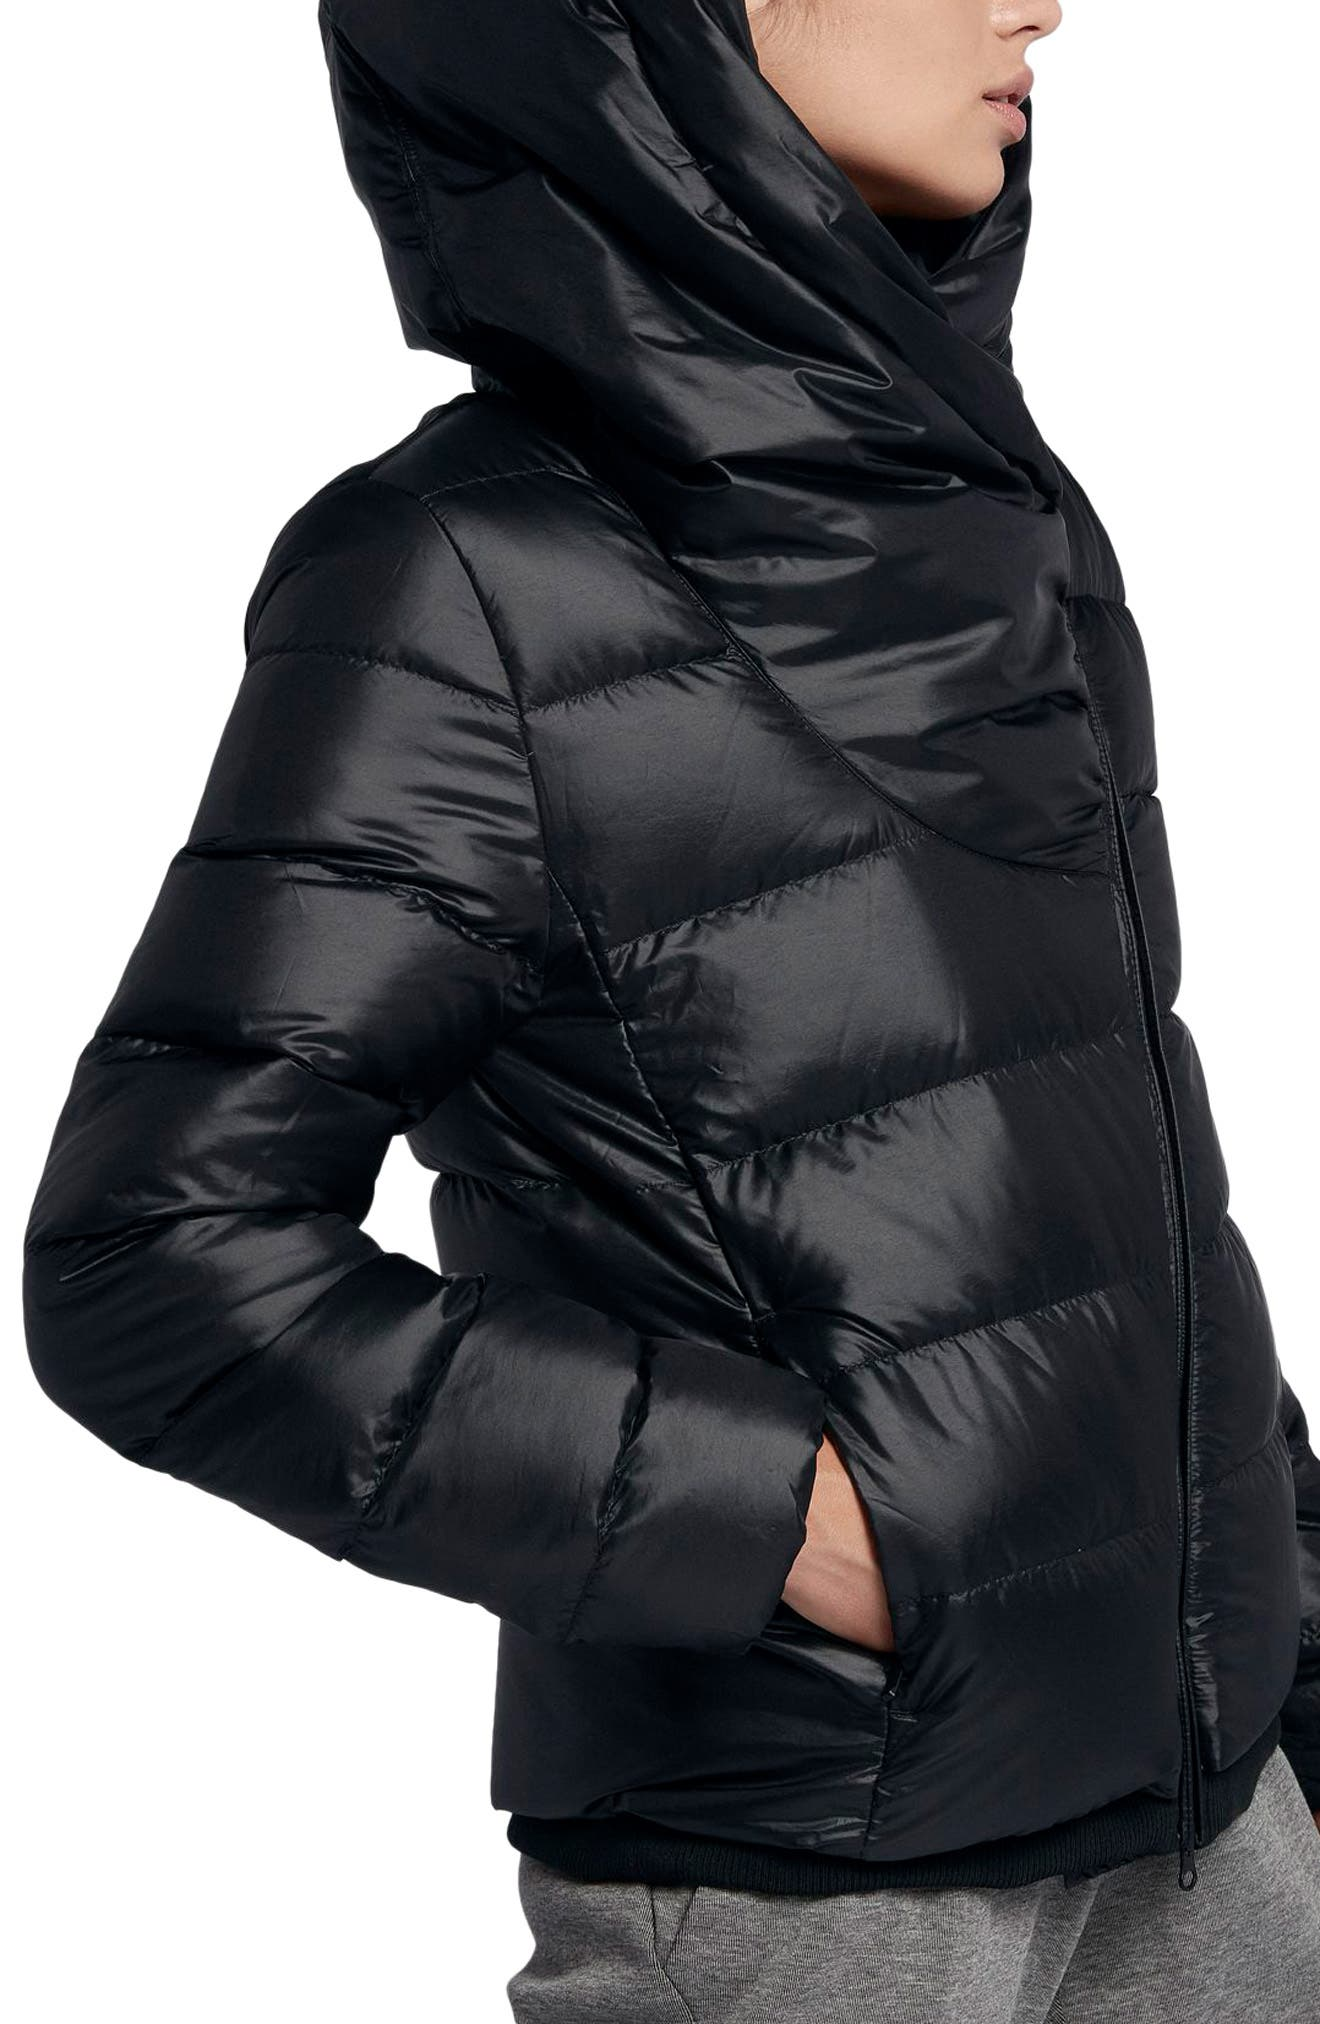 Sportswear Women's Hooded Down Jacket,                             Alternate thumbnail 3, color,                             010